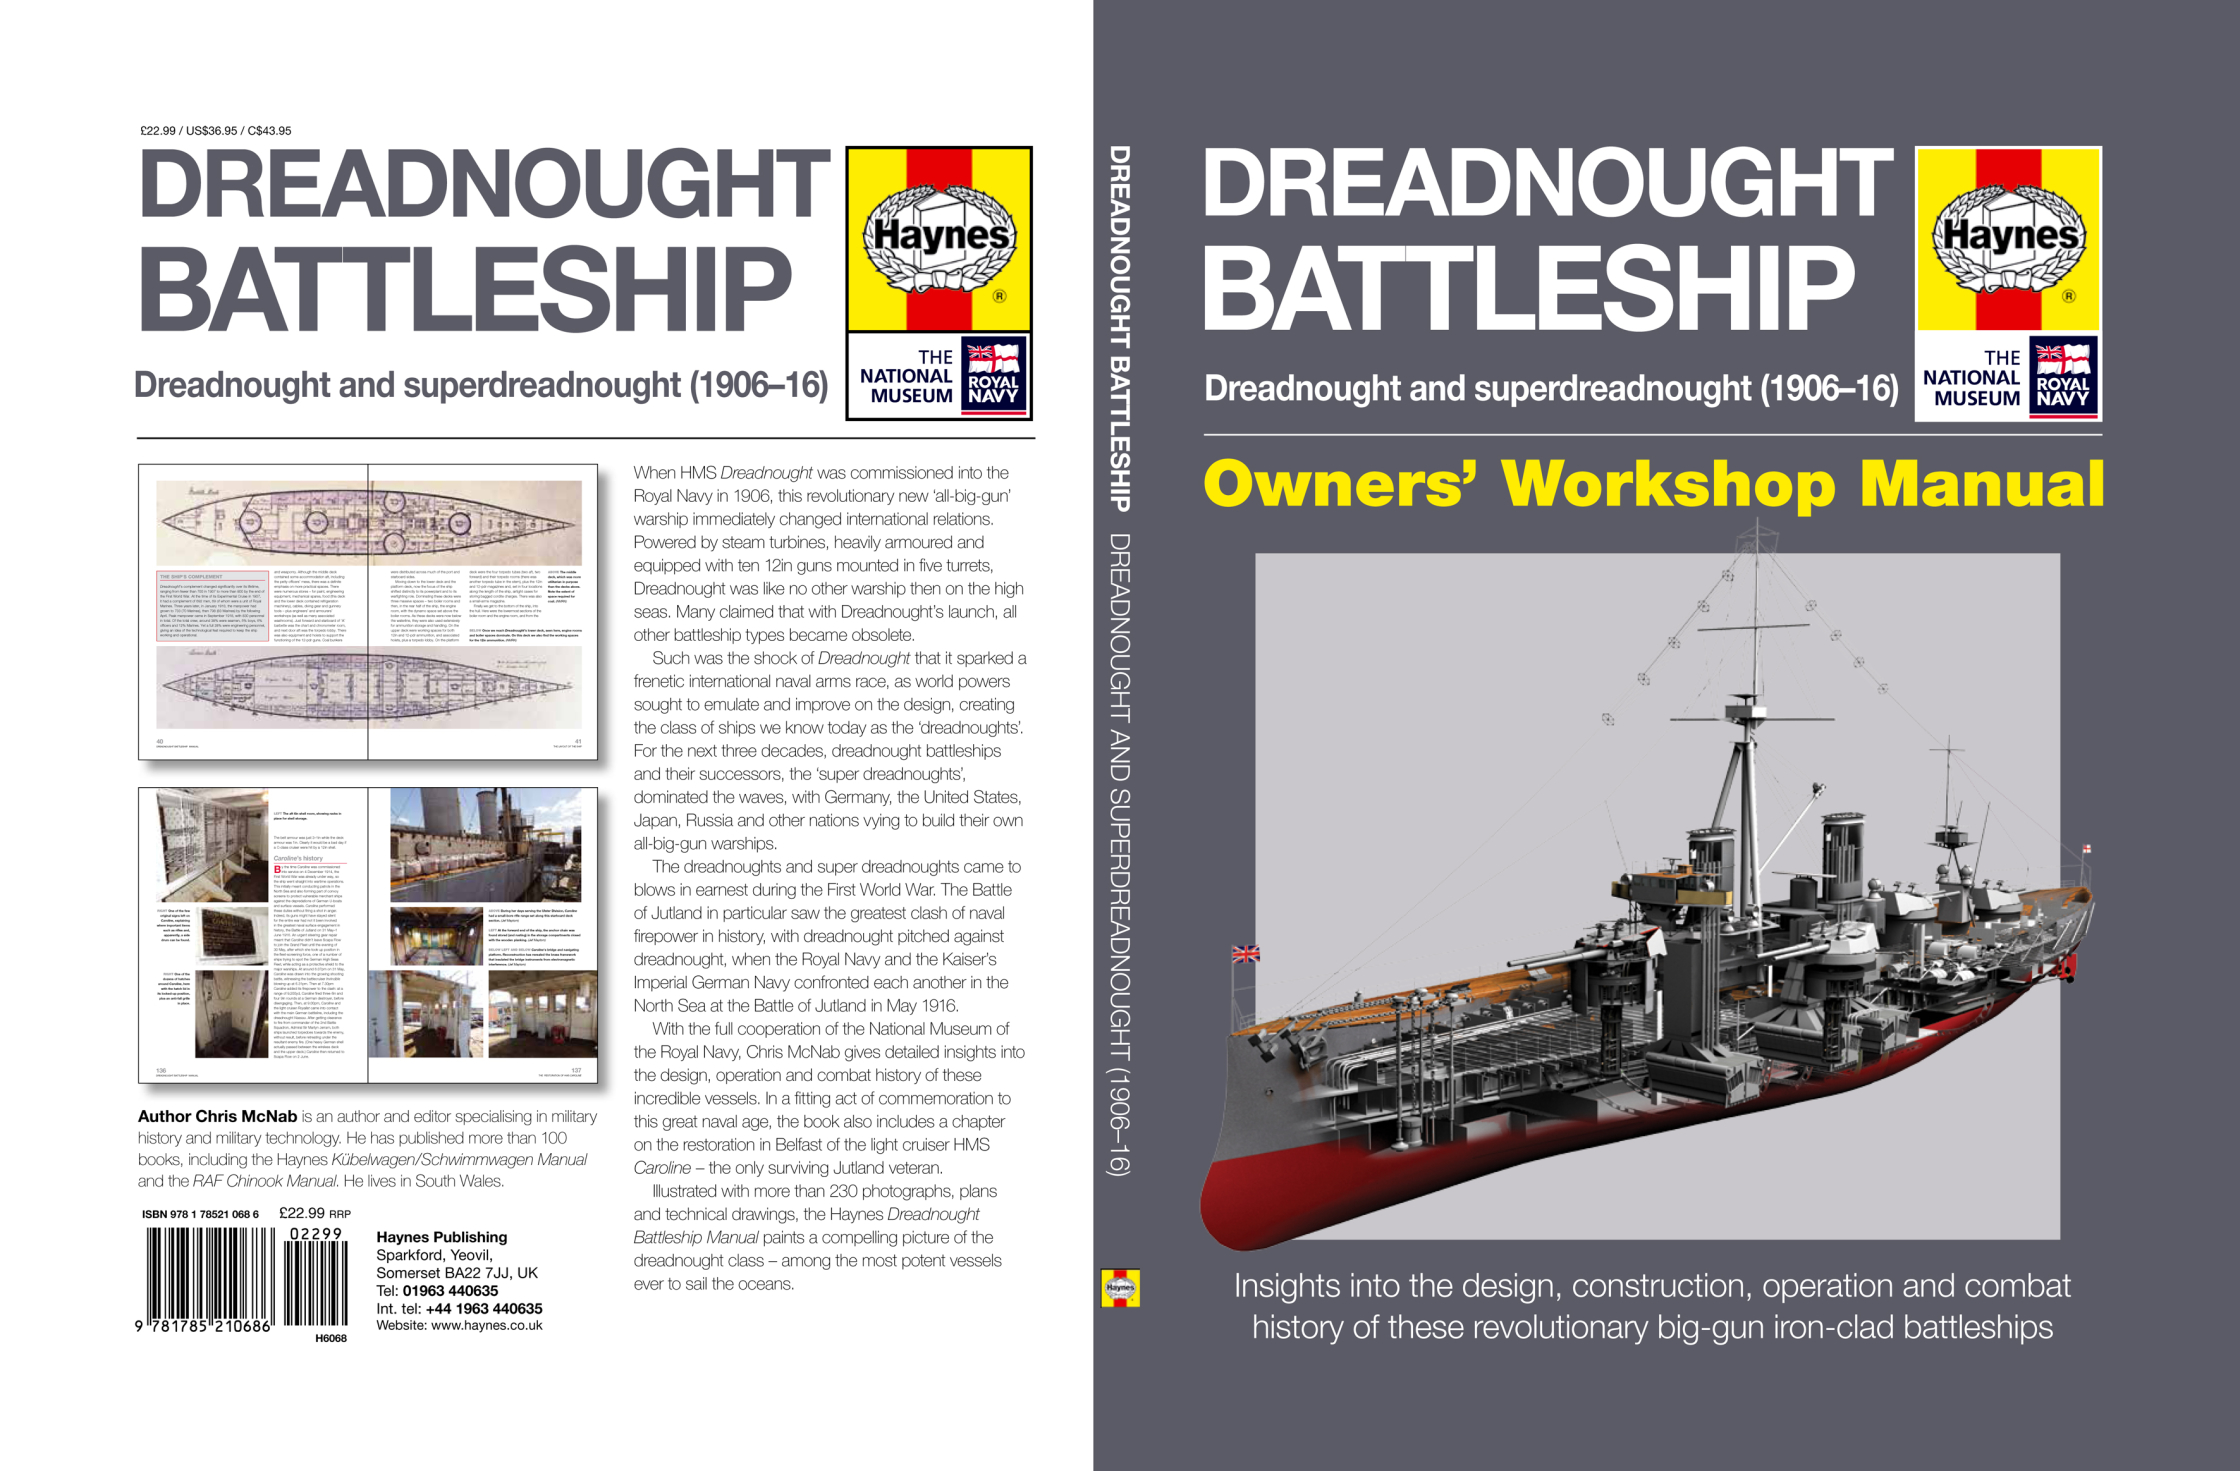 H6068_Dreadnought_cover.jpg